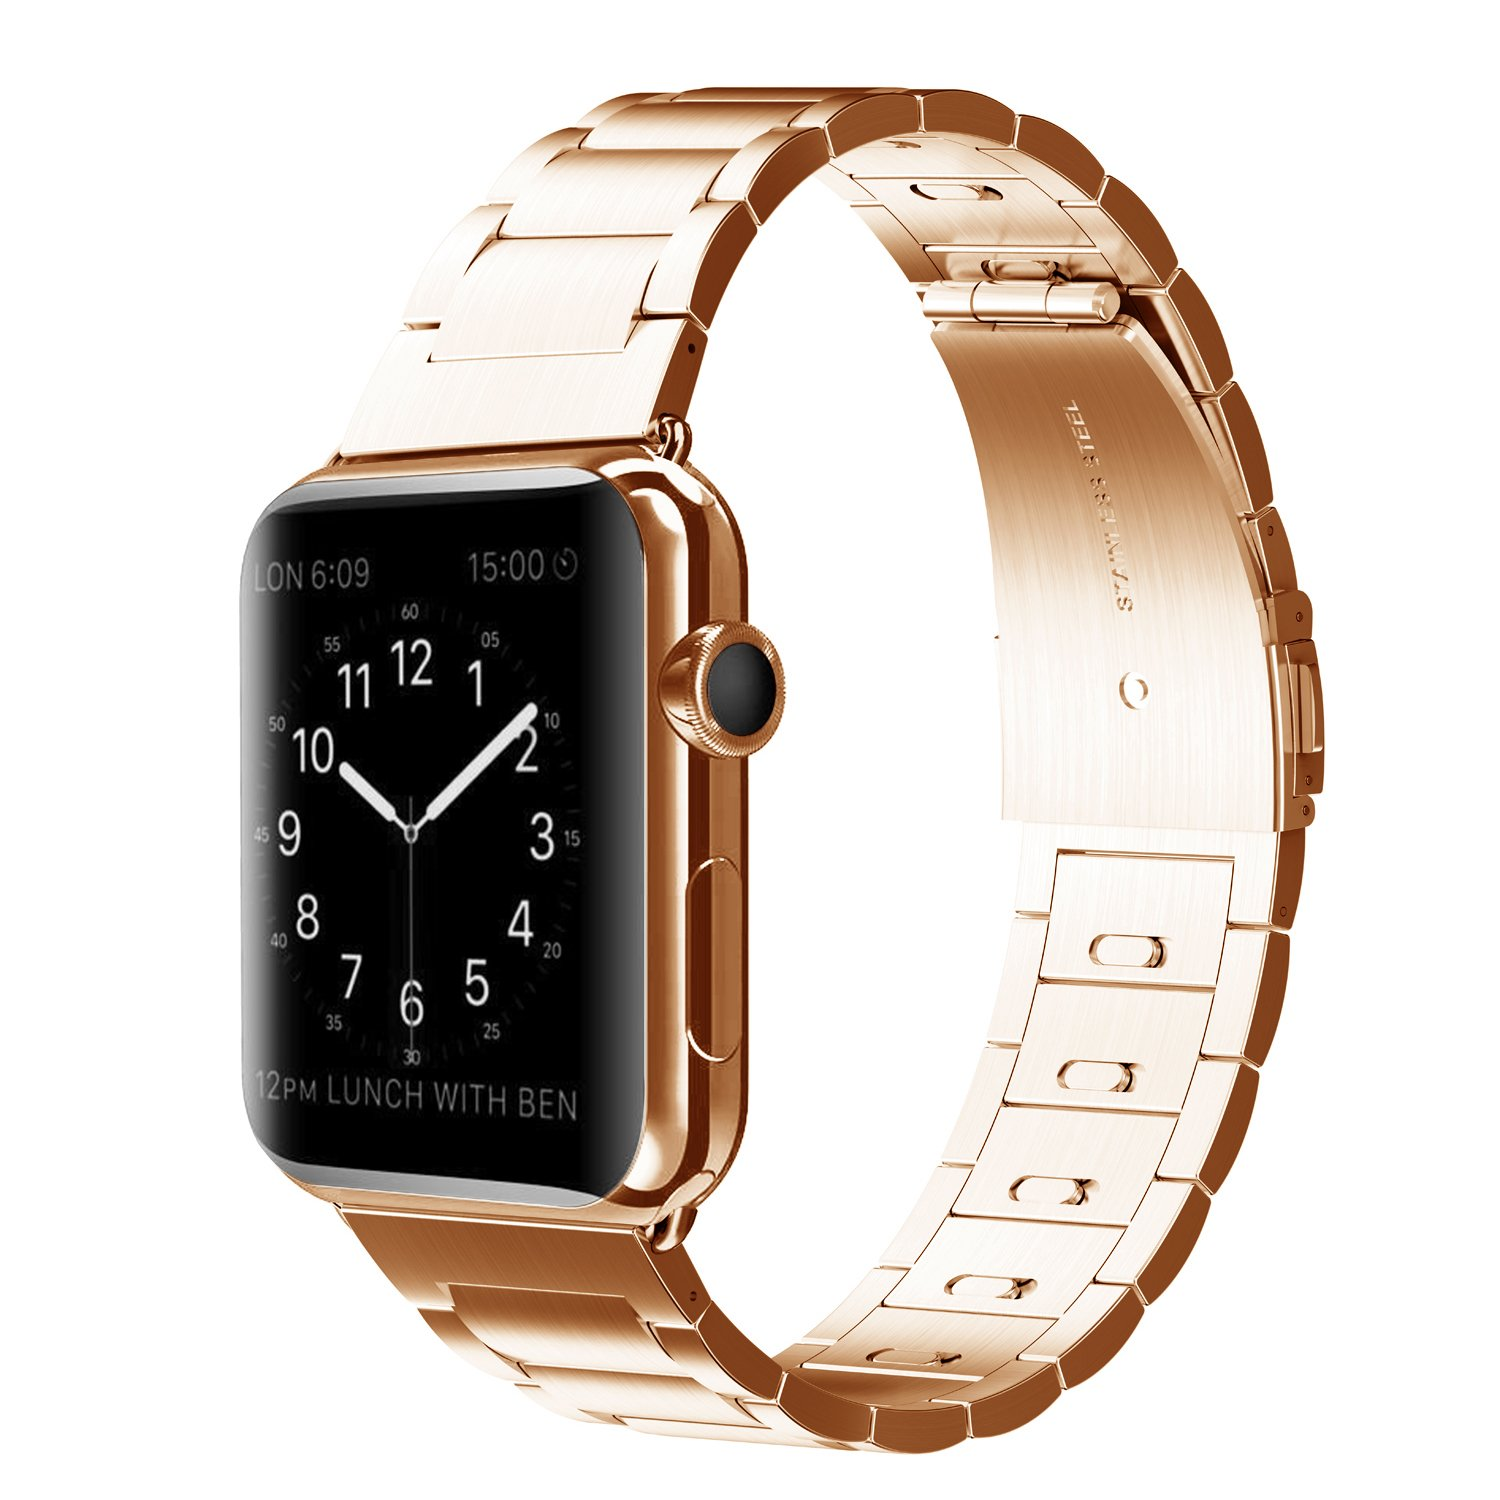 Amazon com elobeth for apple watch band iwatch band apple watch stainless steel watch band move links by hand adapter for apple watch series 2 series